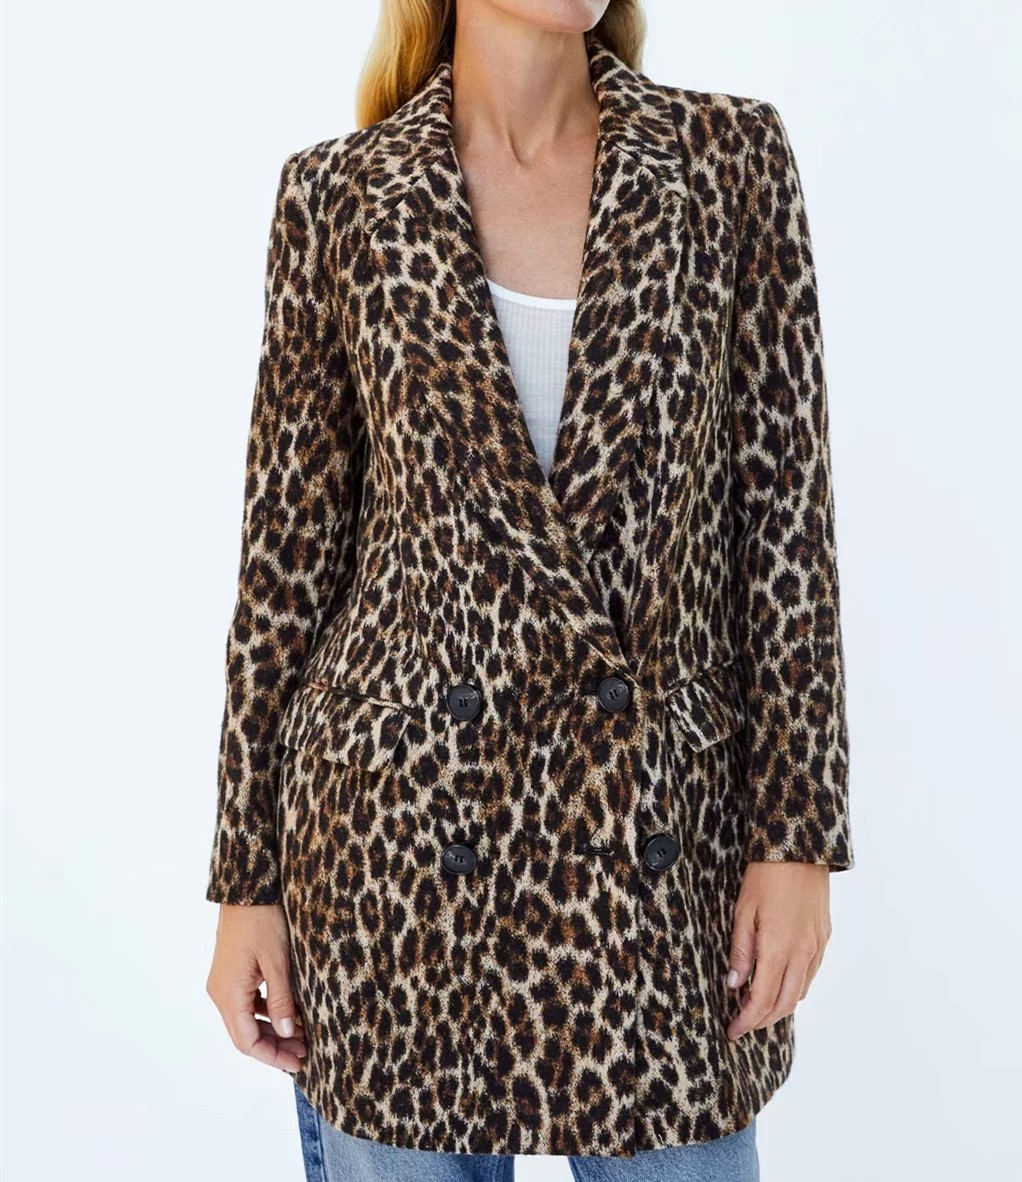 A0907T1 Europe and the United States fall 2018 new double-breasted leopard long coat 1497 #